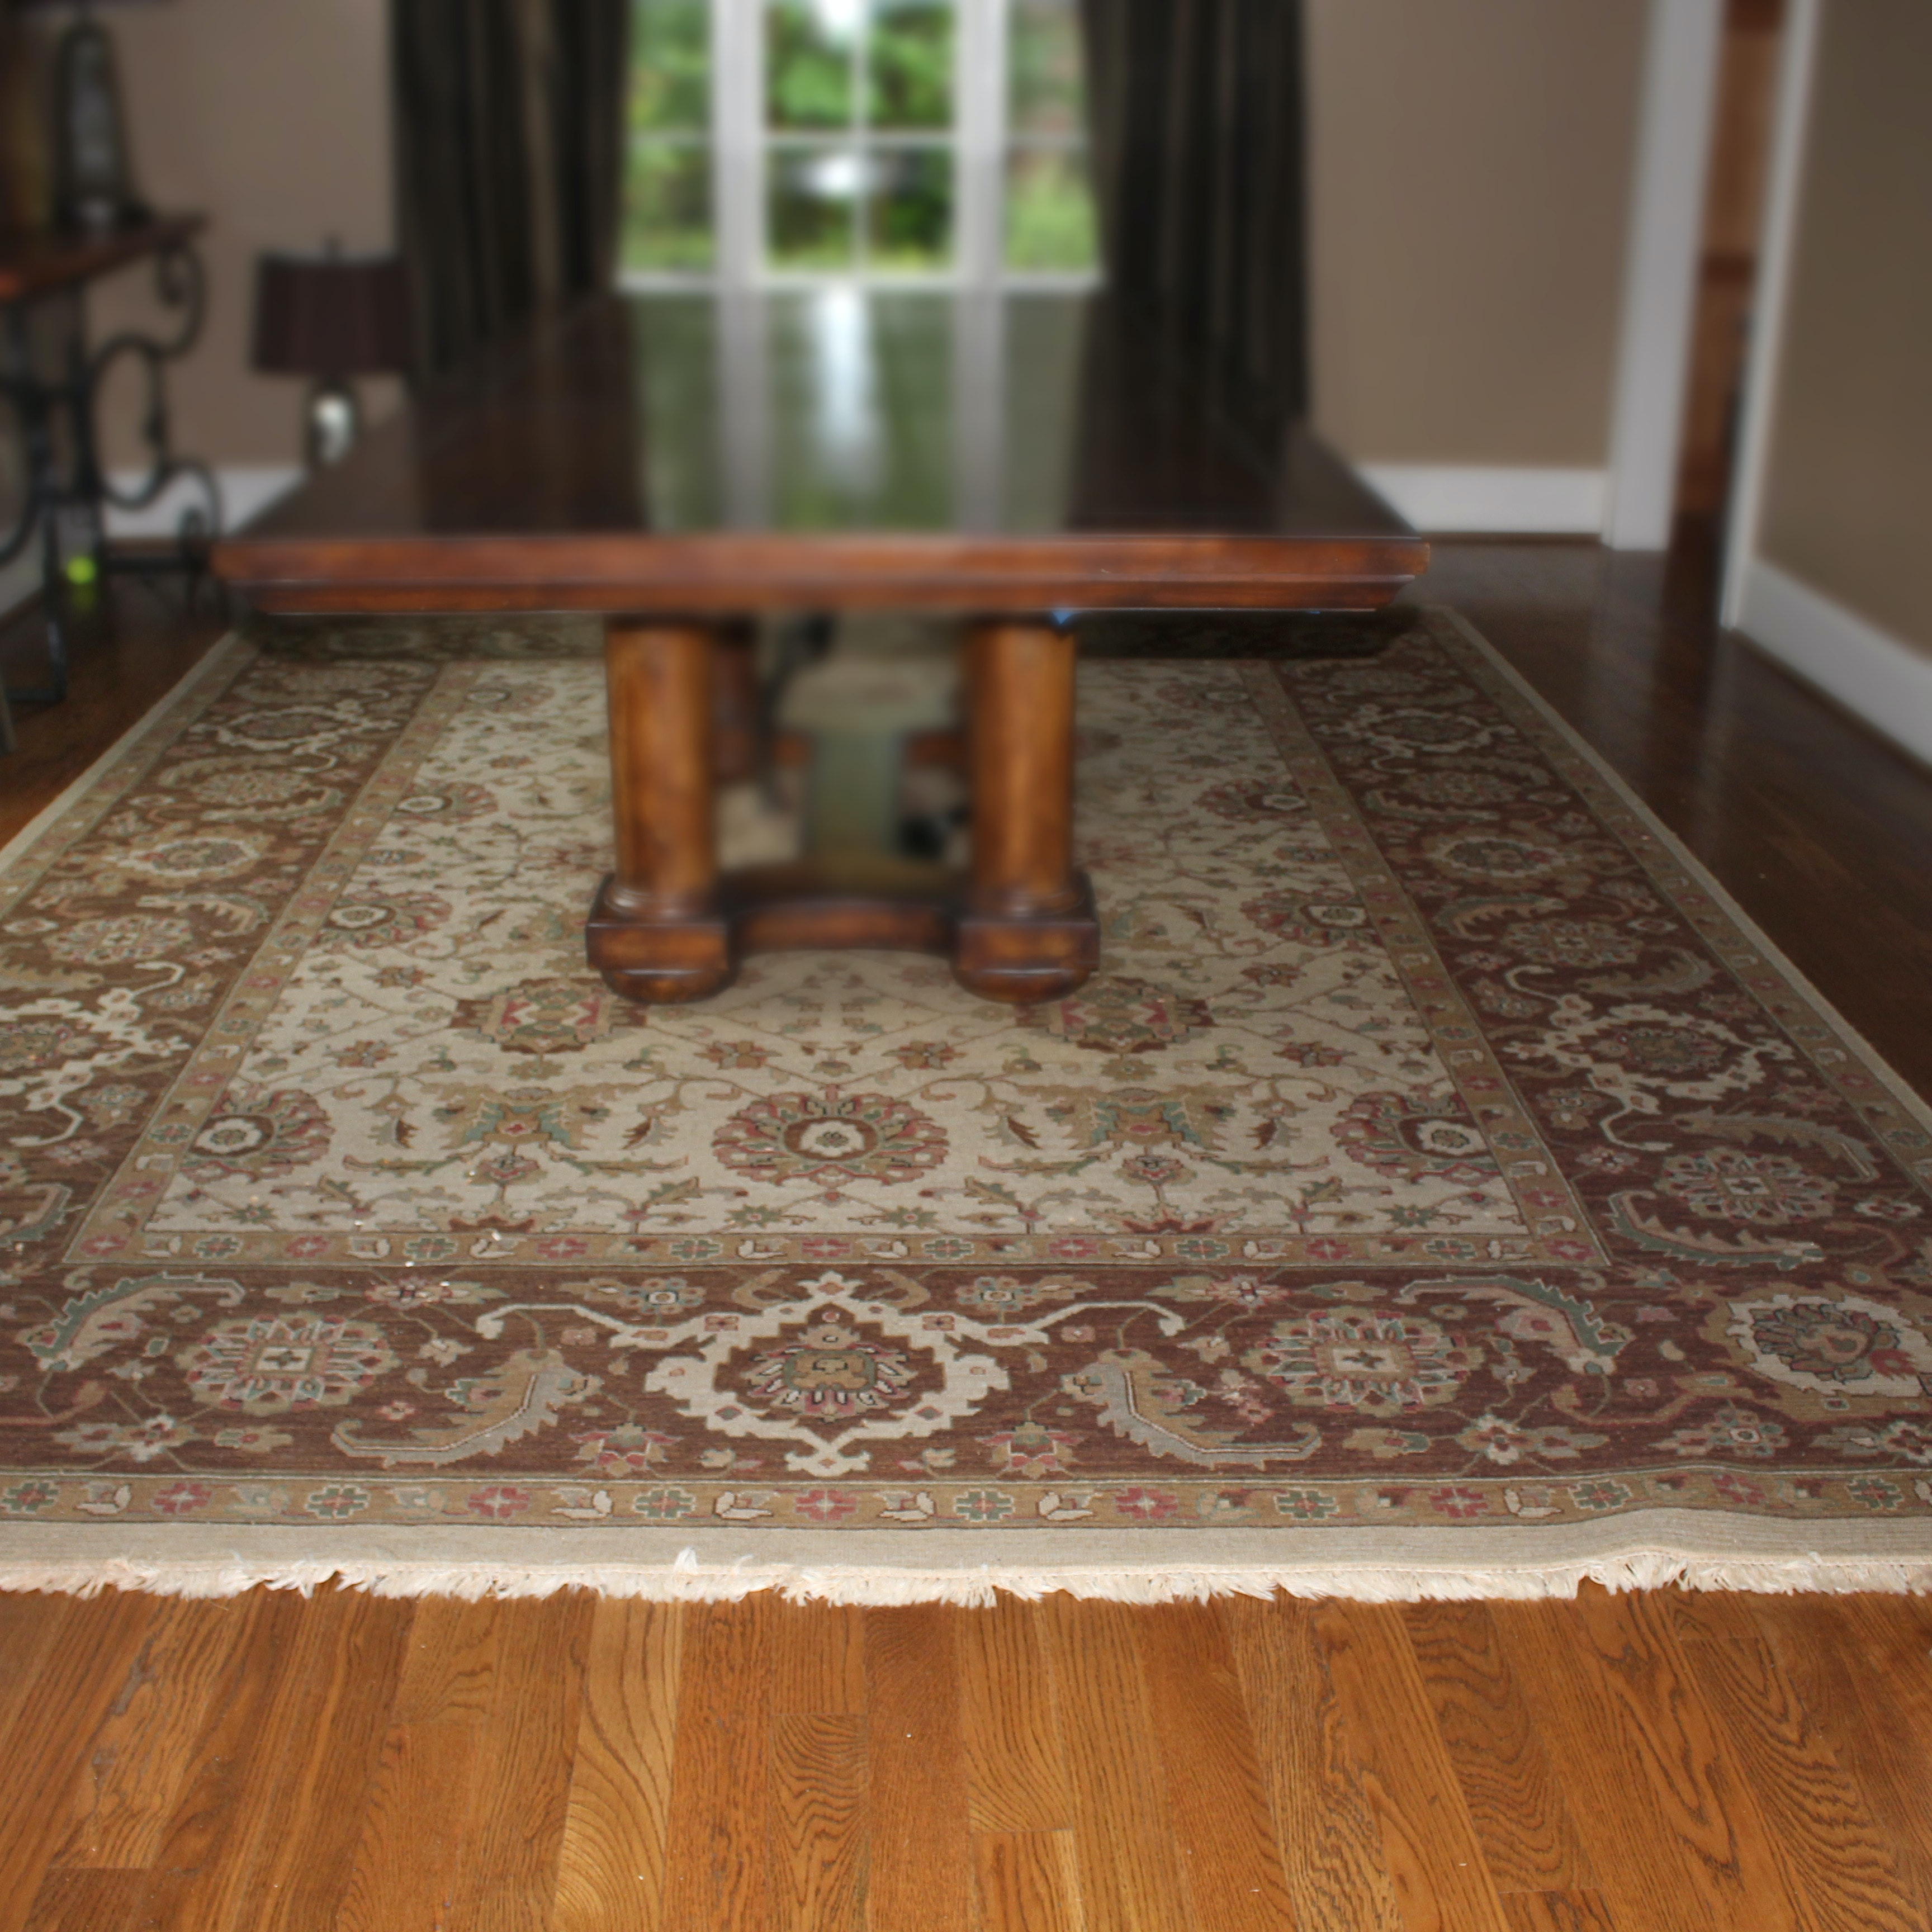 Large Hand-Knotted Indian Wool Area Rug